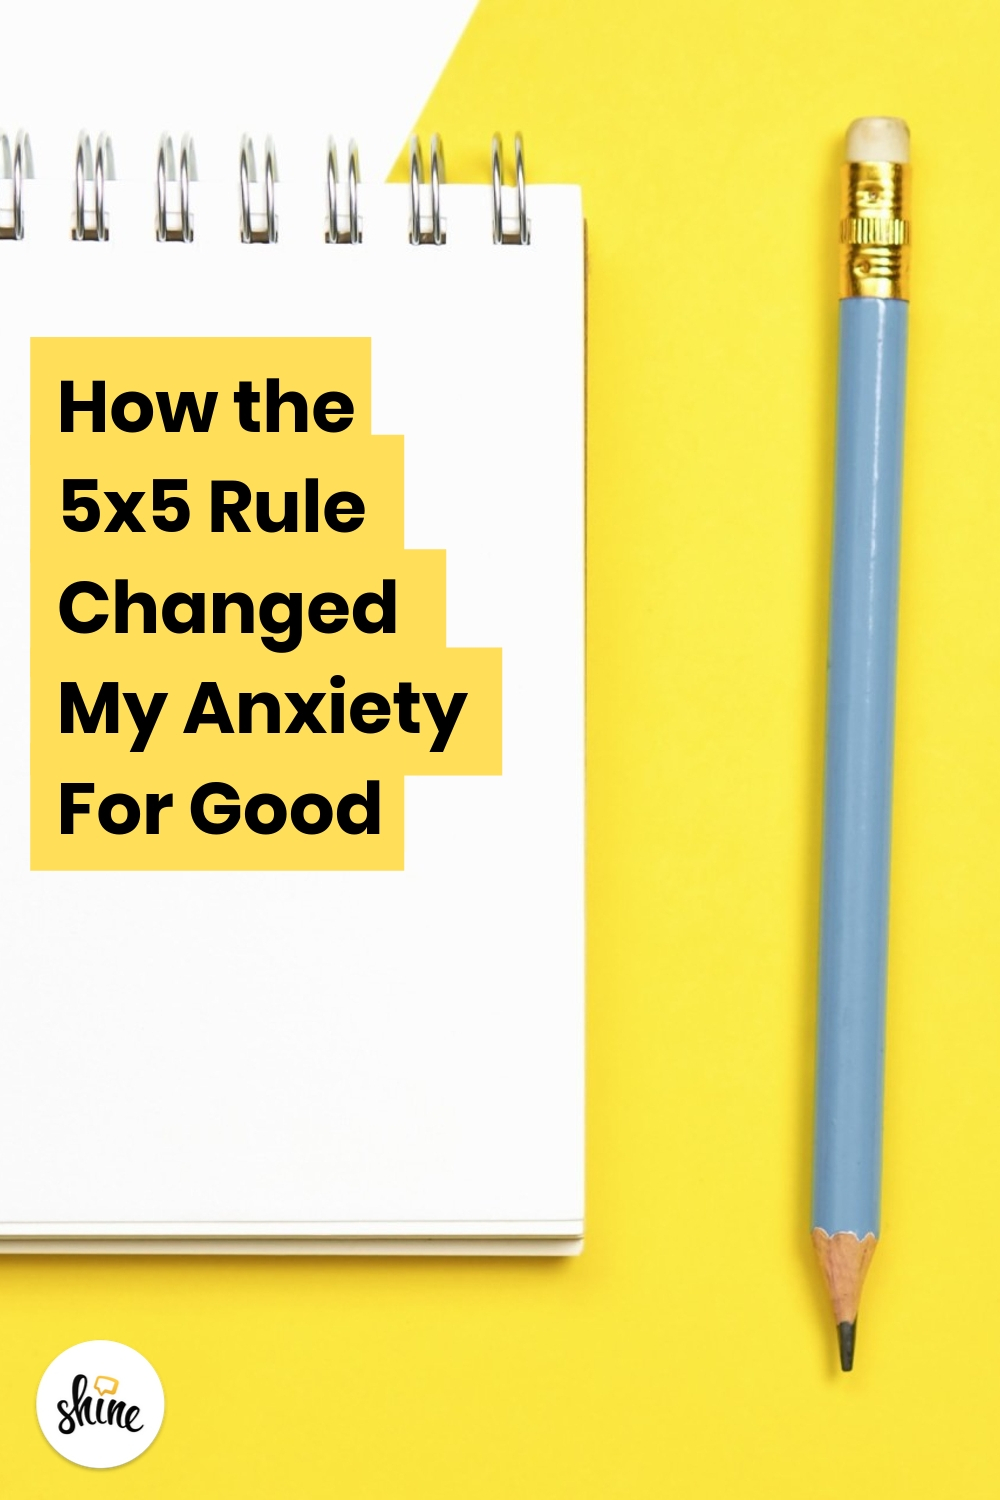 5x5 Rule for Managing Anxiety